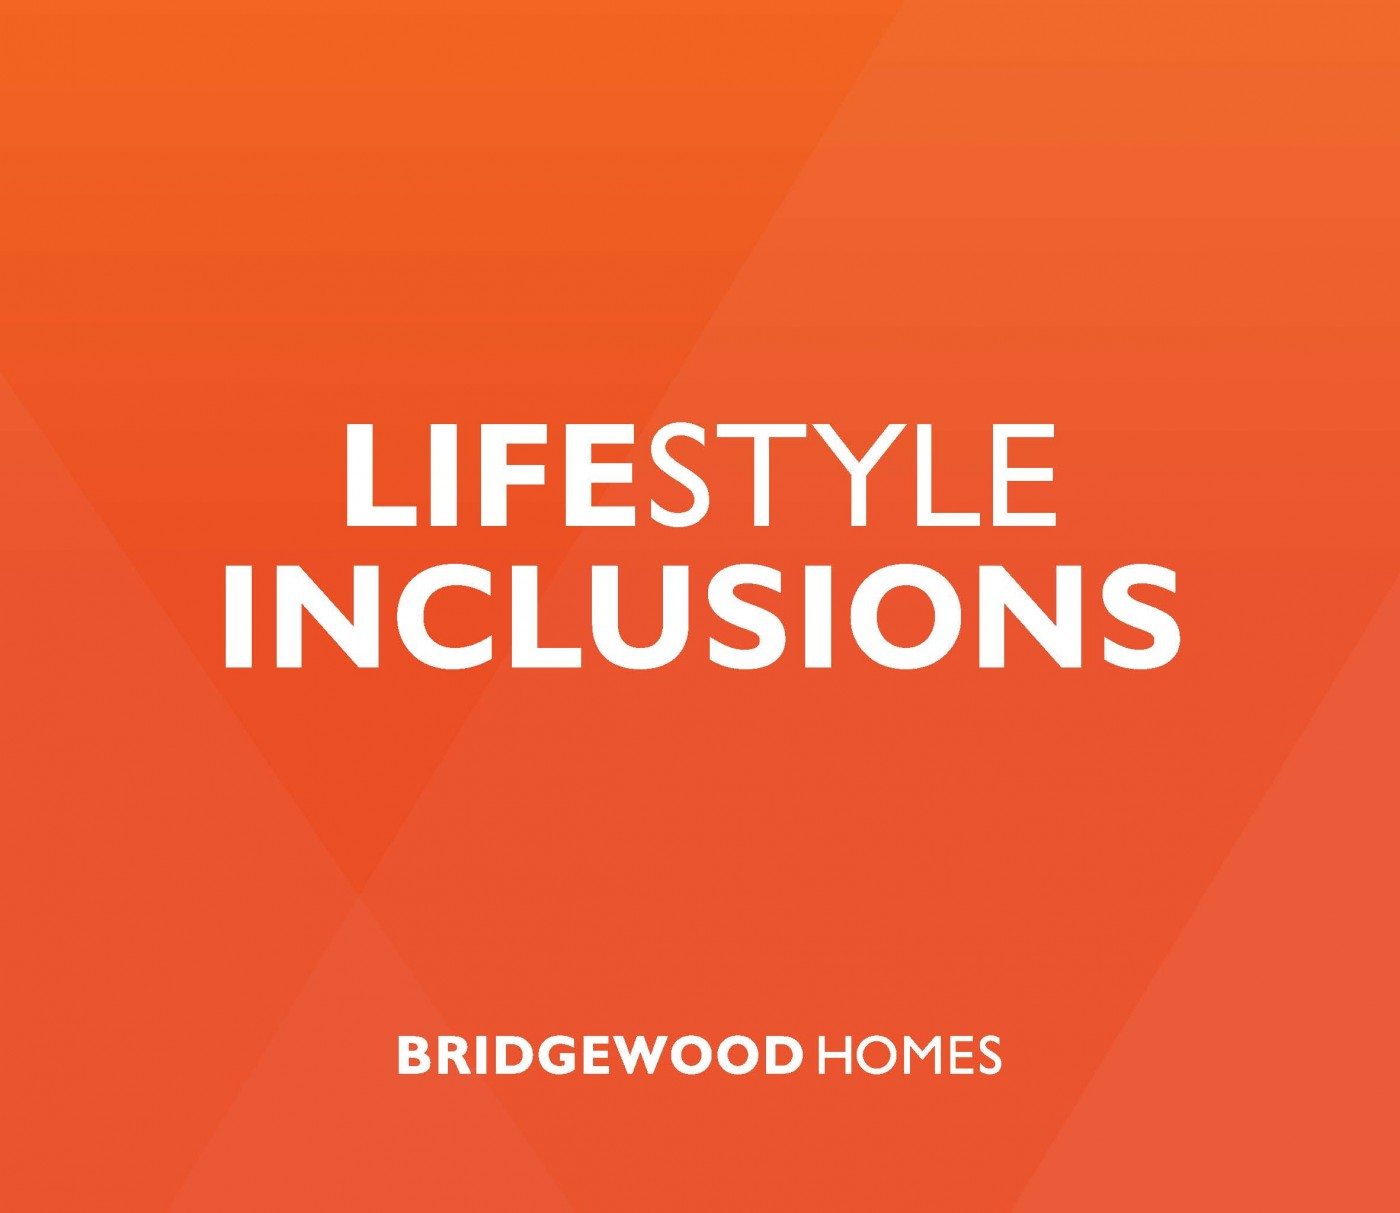 View Our Lifestyle Inclusions